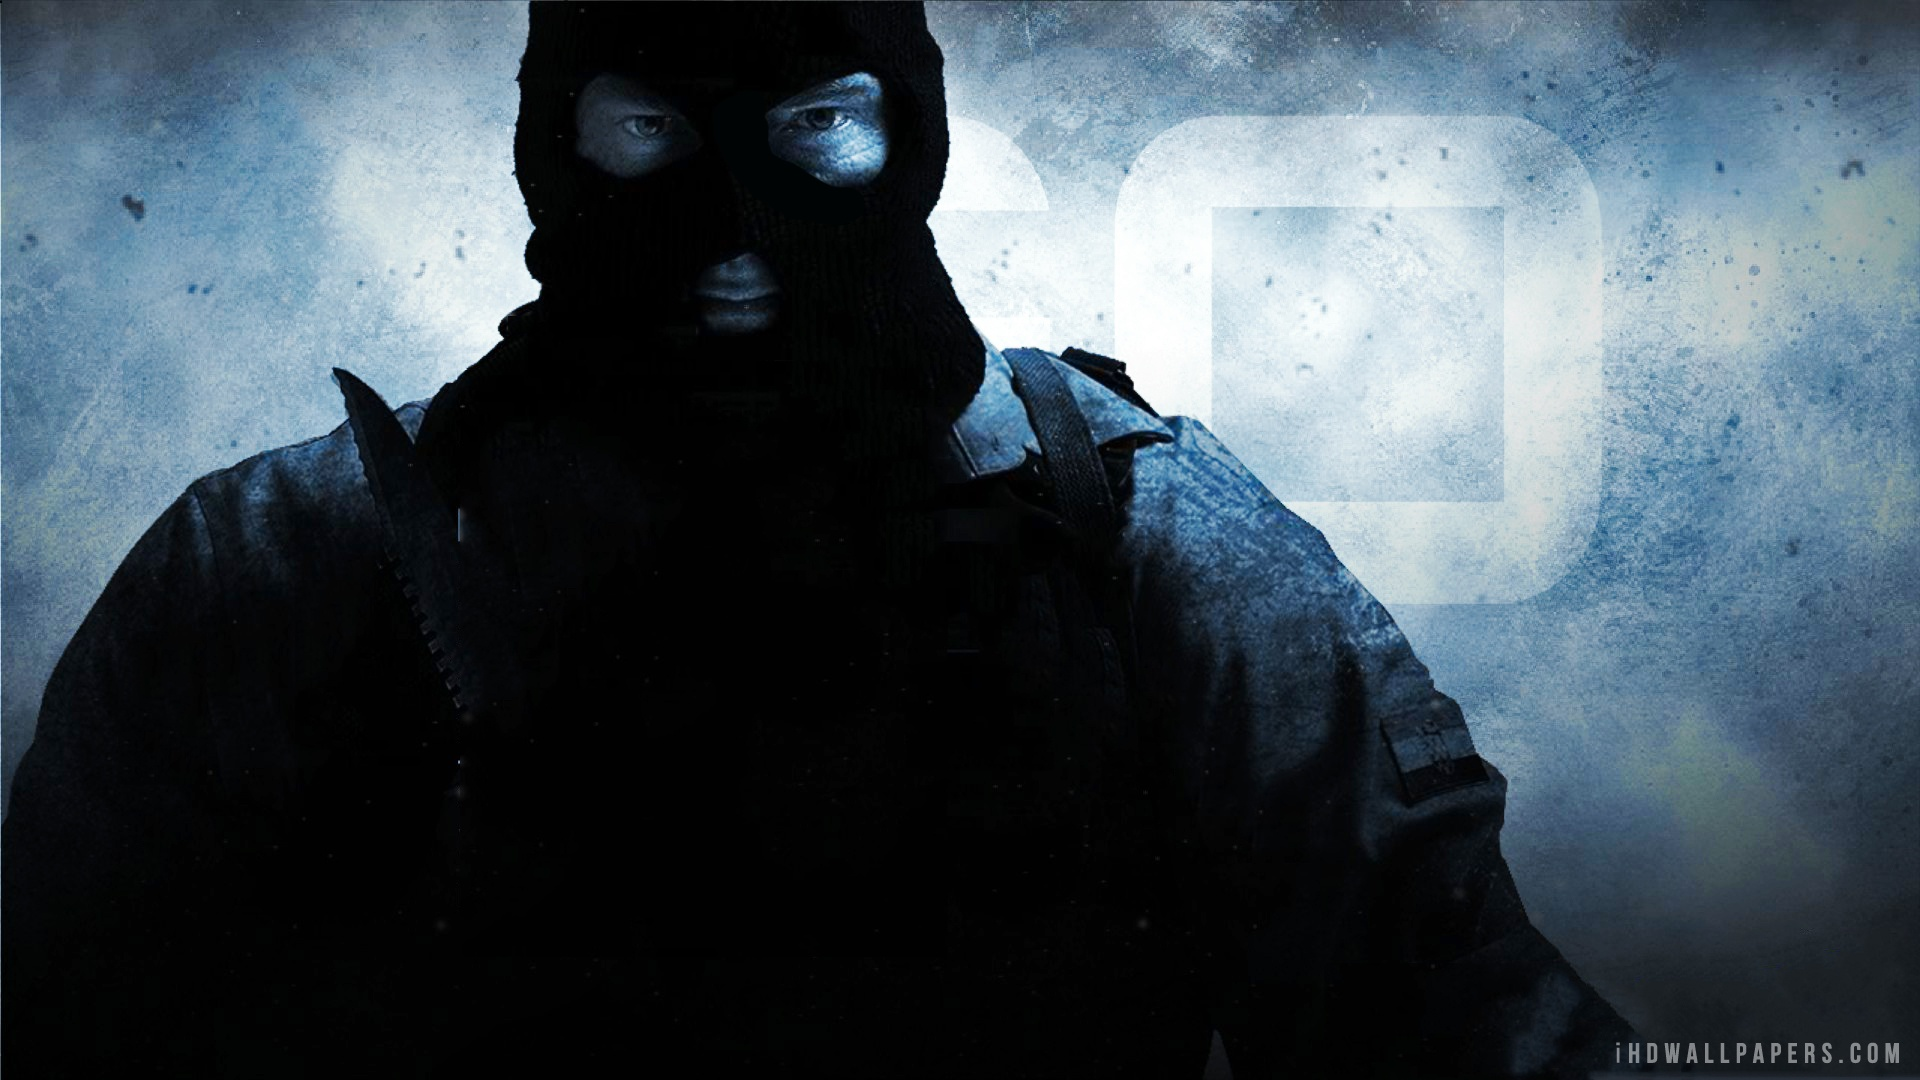 Counter Strike Global Offensive Game HD Wallpaper   iHD Wallpapers 1920x1080